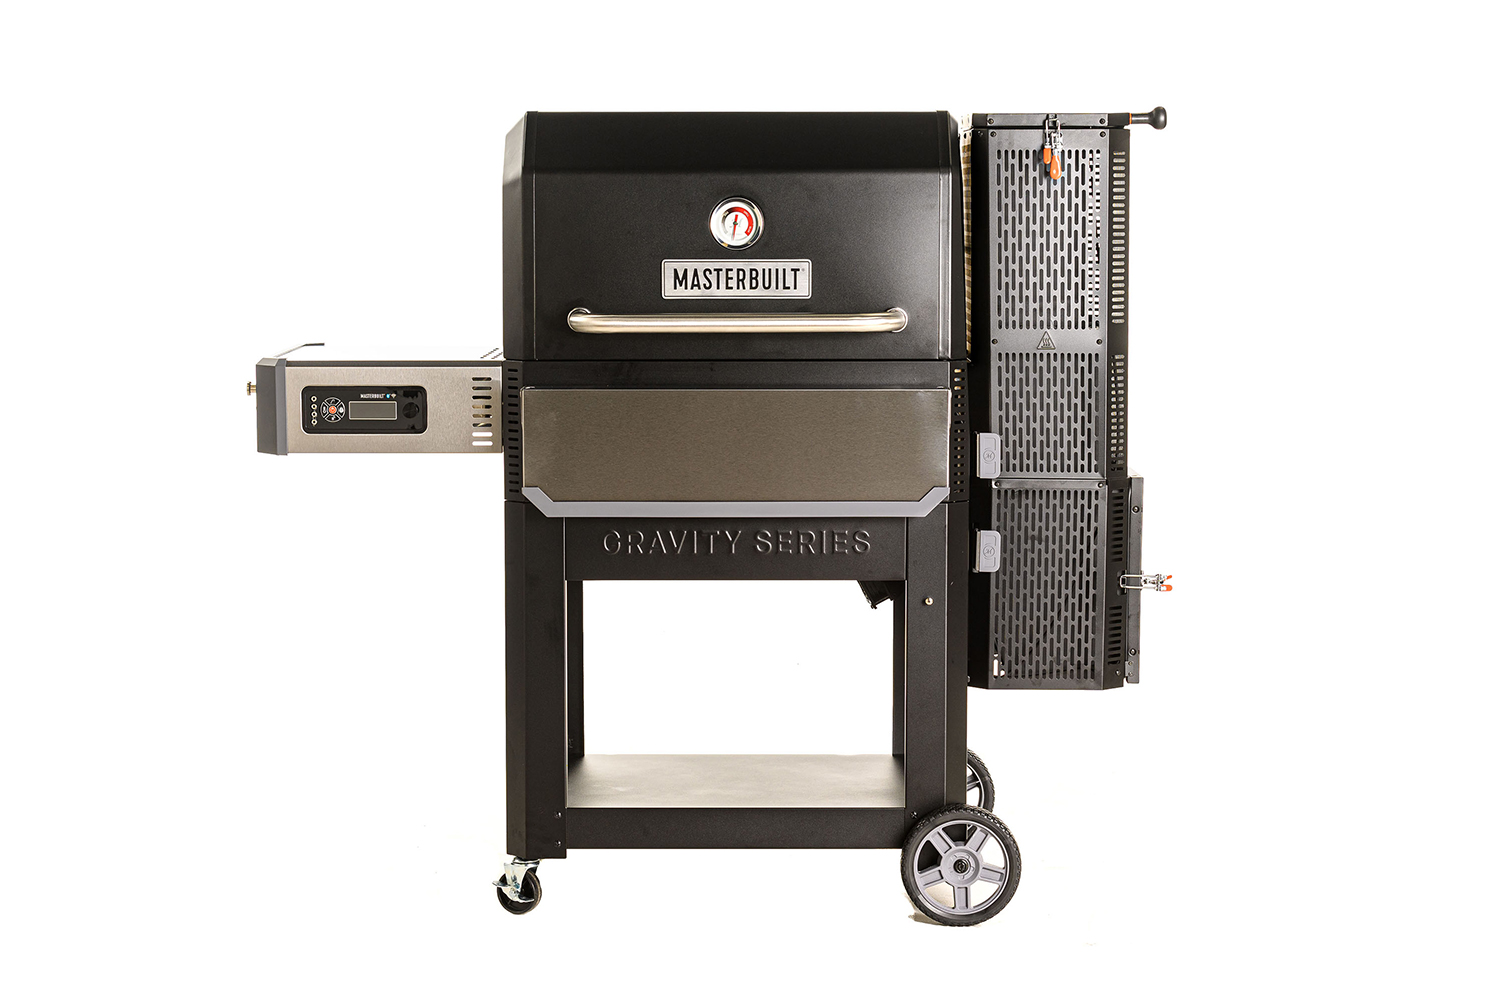 Become a master fish chef with the Masterbuilt Gravity Series 1050 Digital Charcoal Grill + Smoker